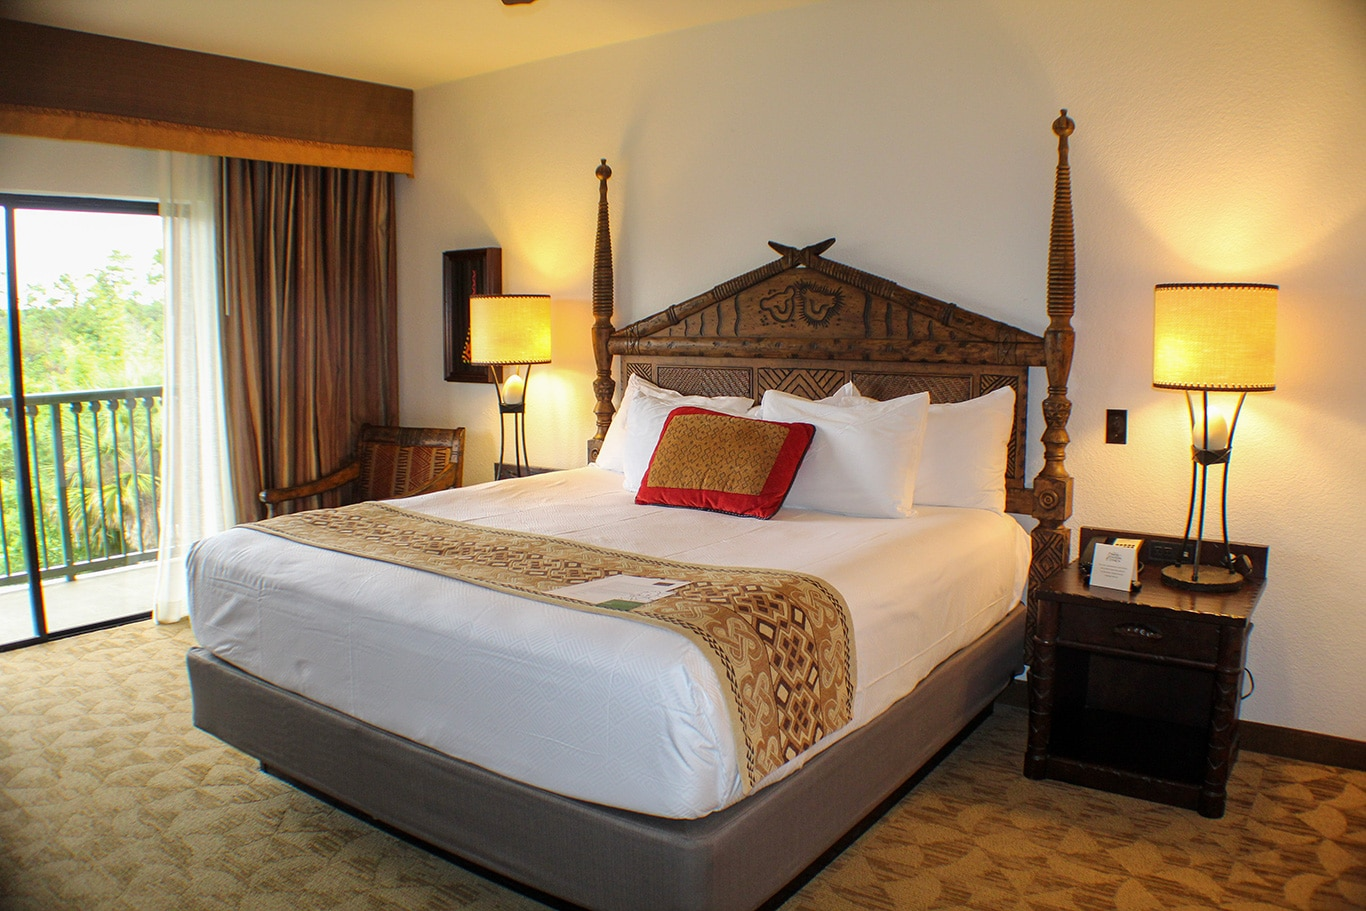 Disney's-Animal-Kingdom-Lodge-Villas-Bedroom